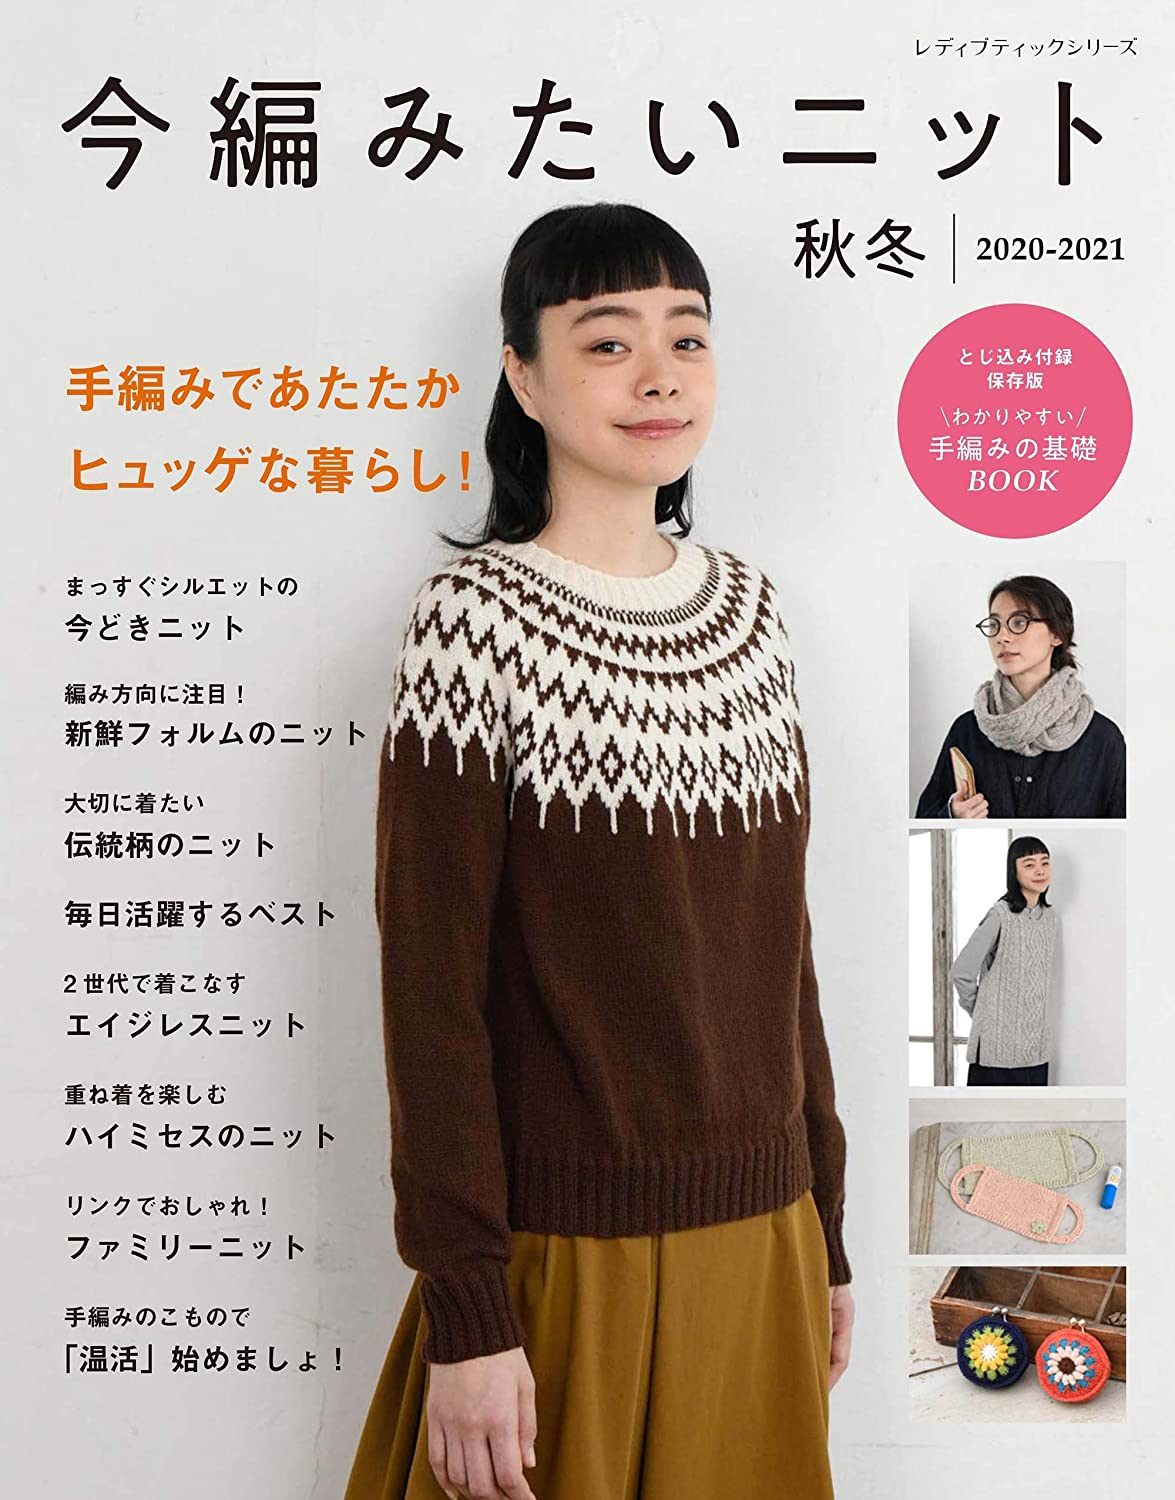 I want to knit now Fall Winter 2020-2021